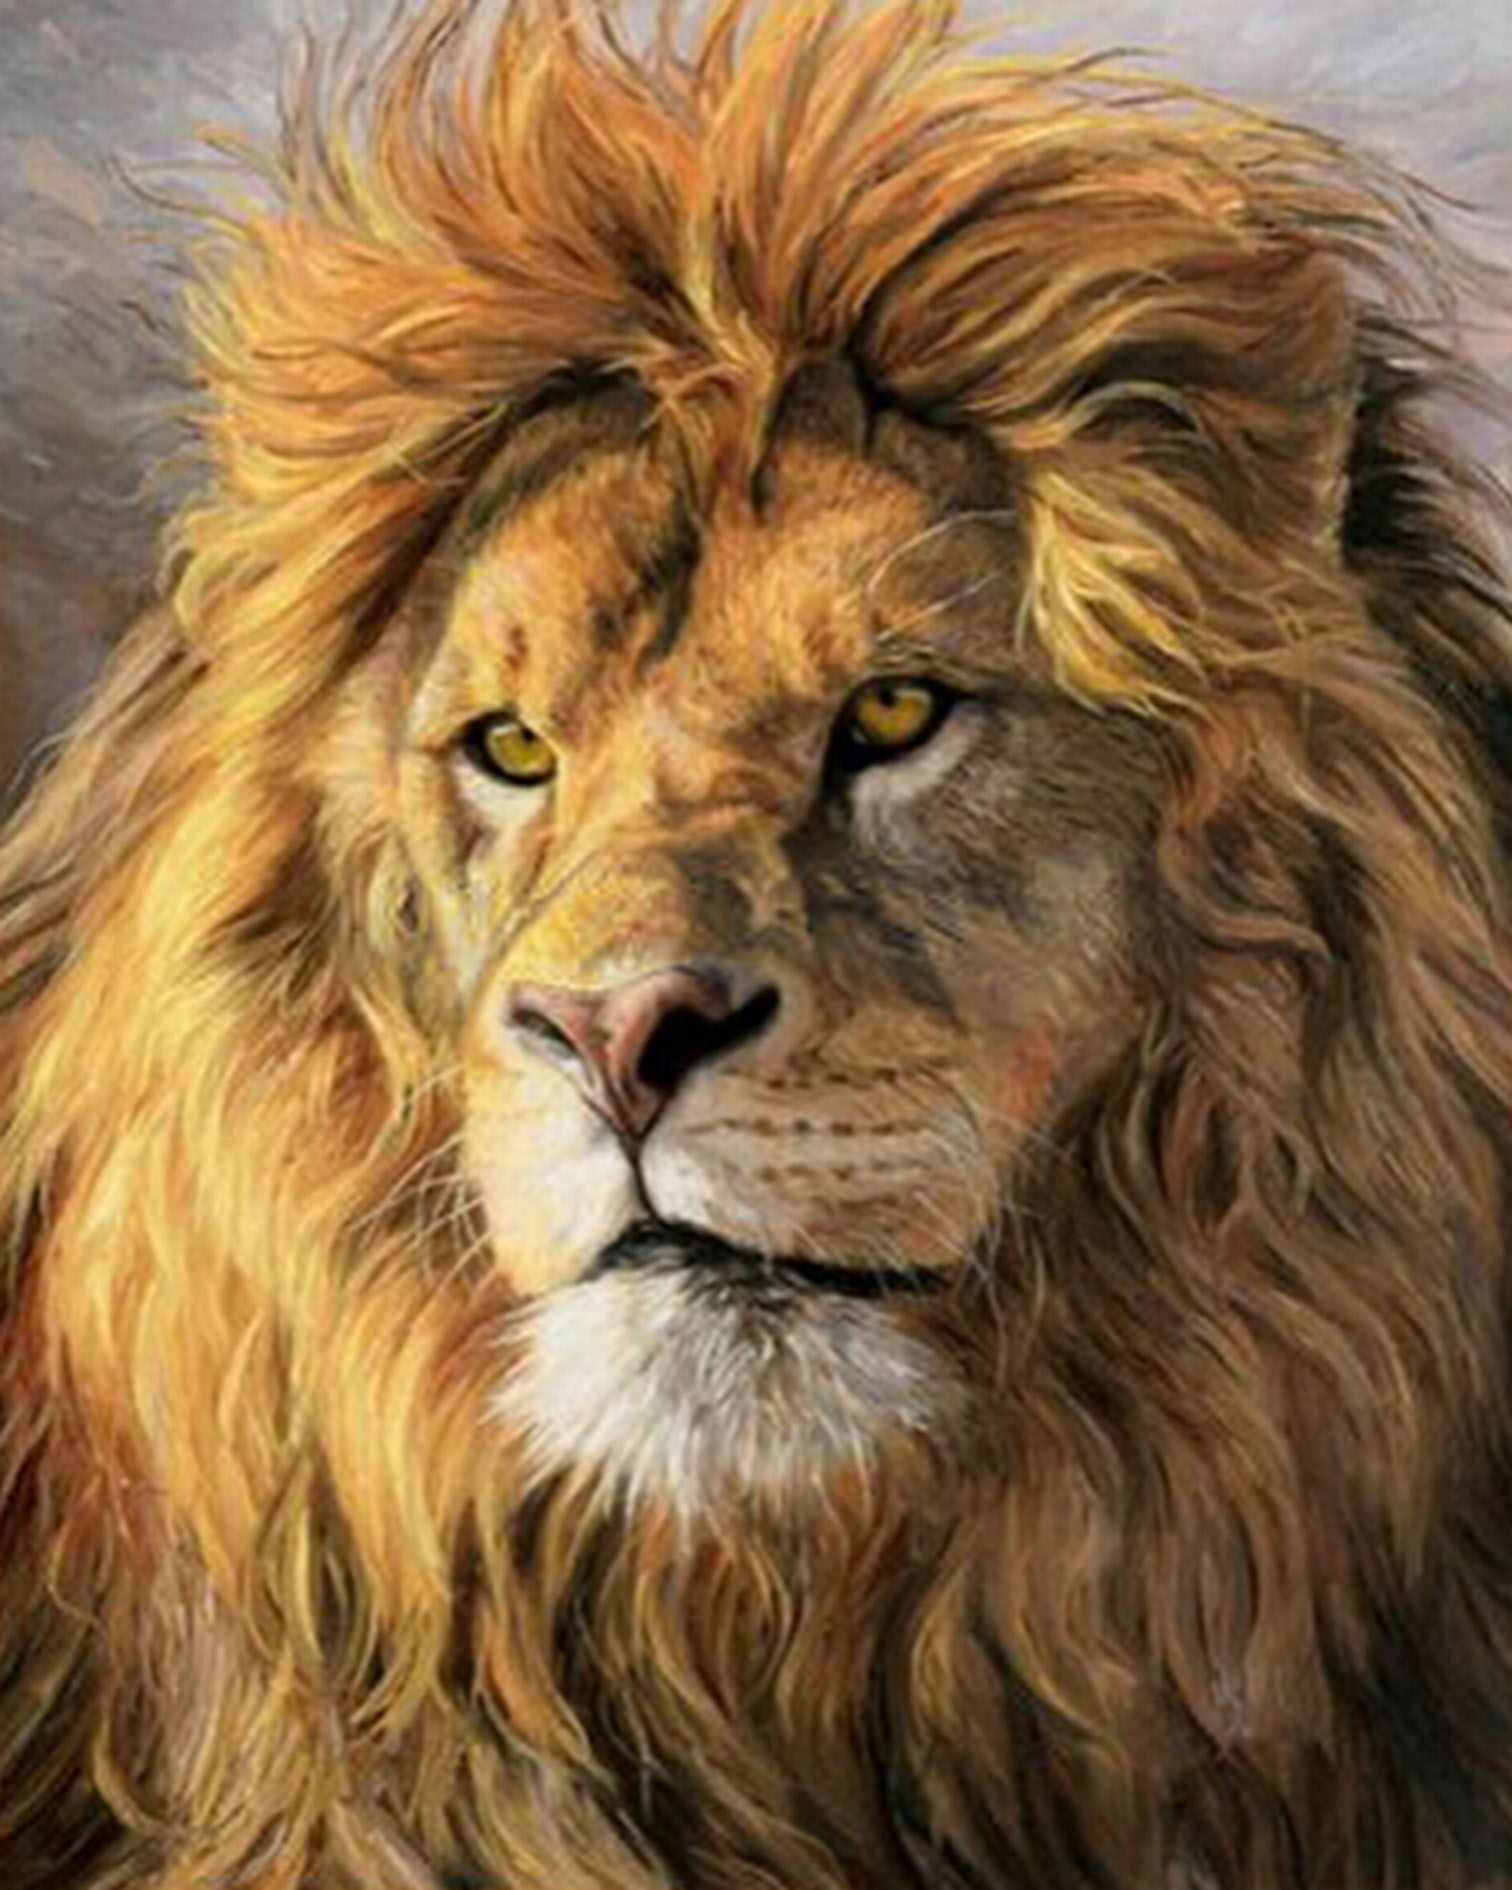 Wholesalers For Home Decor Online Buy Wholesale Resin Lion Head From China Resin Lion